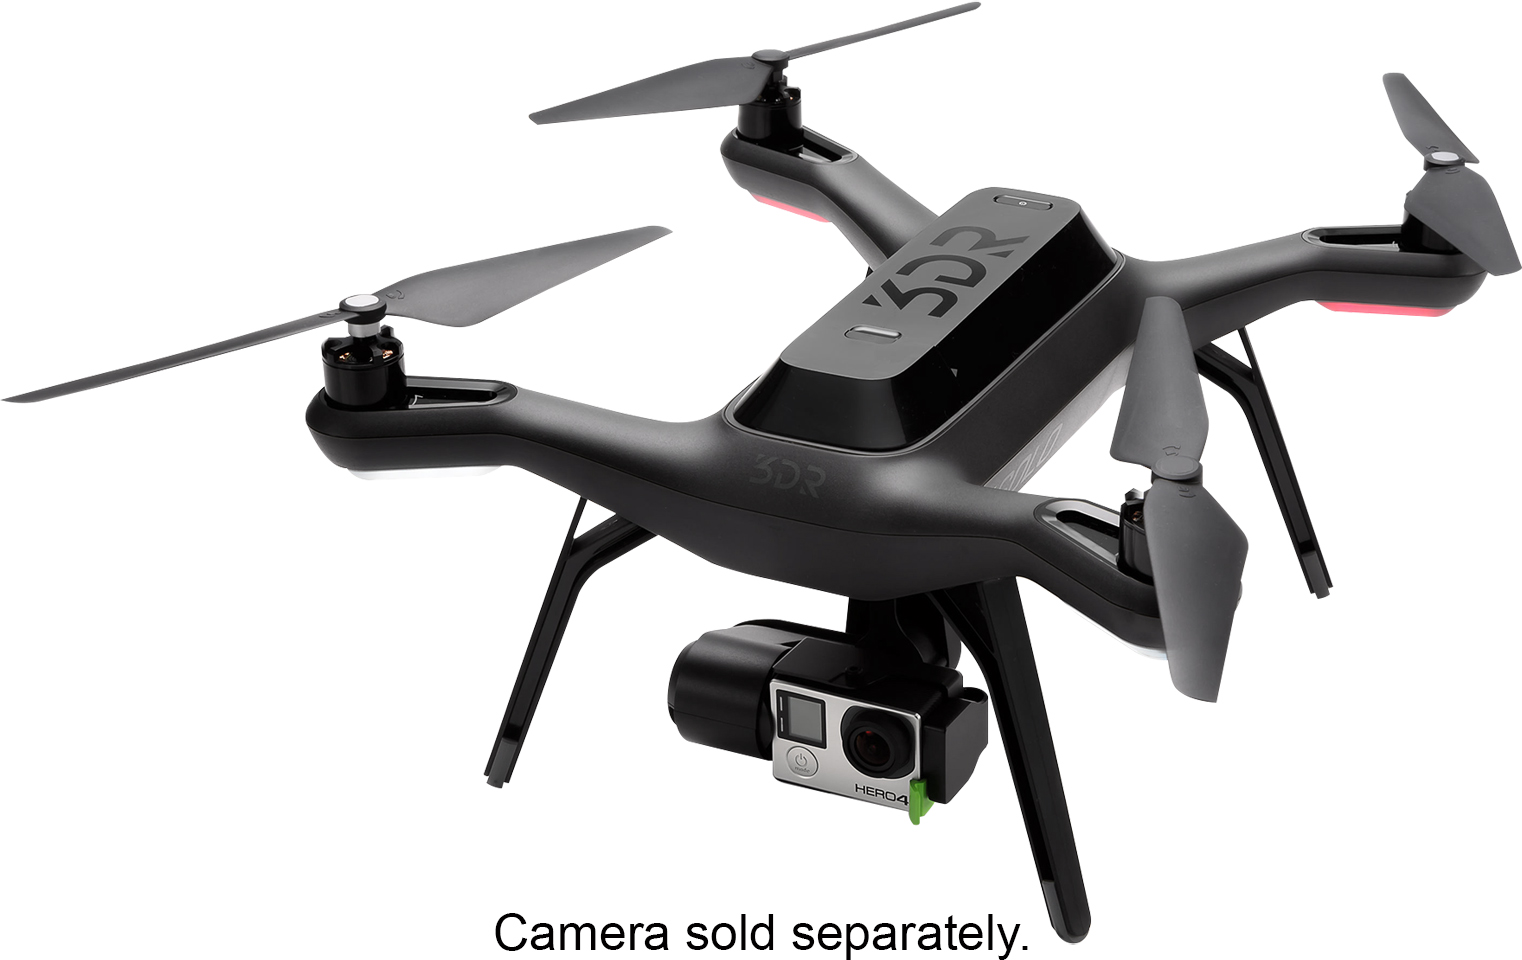 3D Robotics Solo Drone – Get it at Best Buy